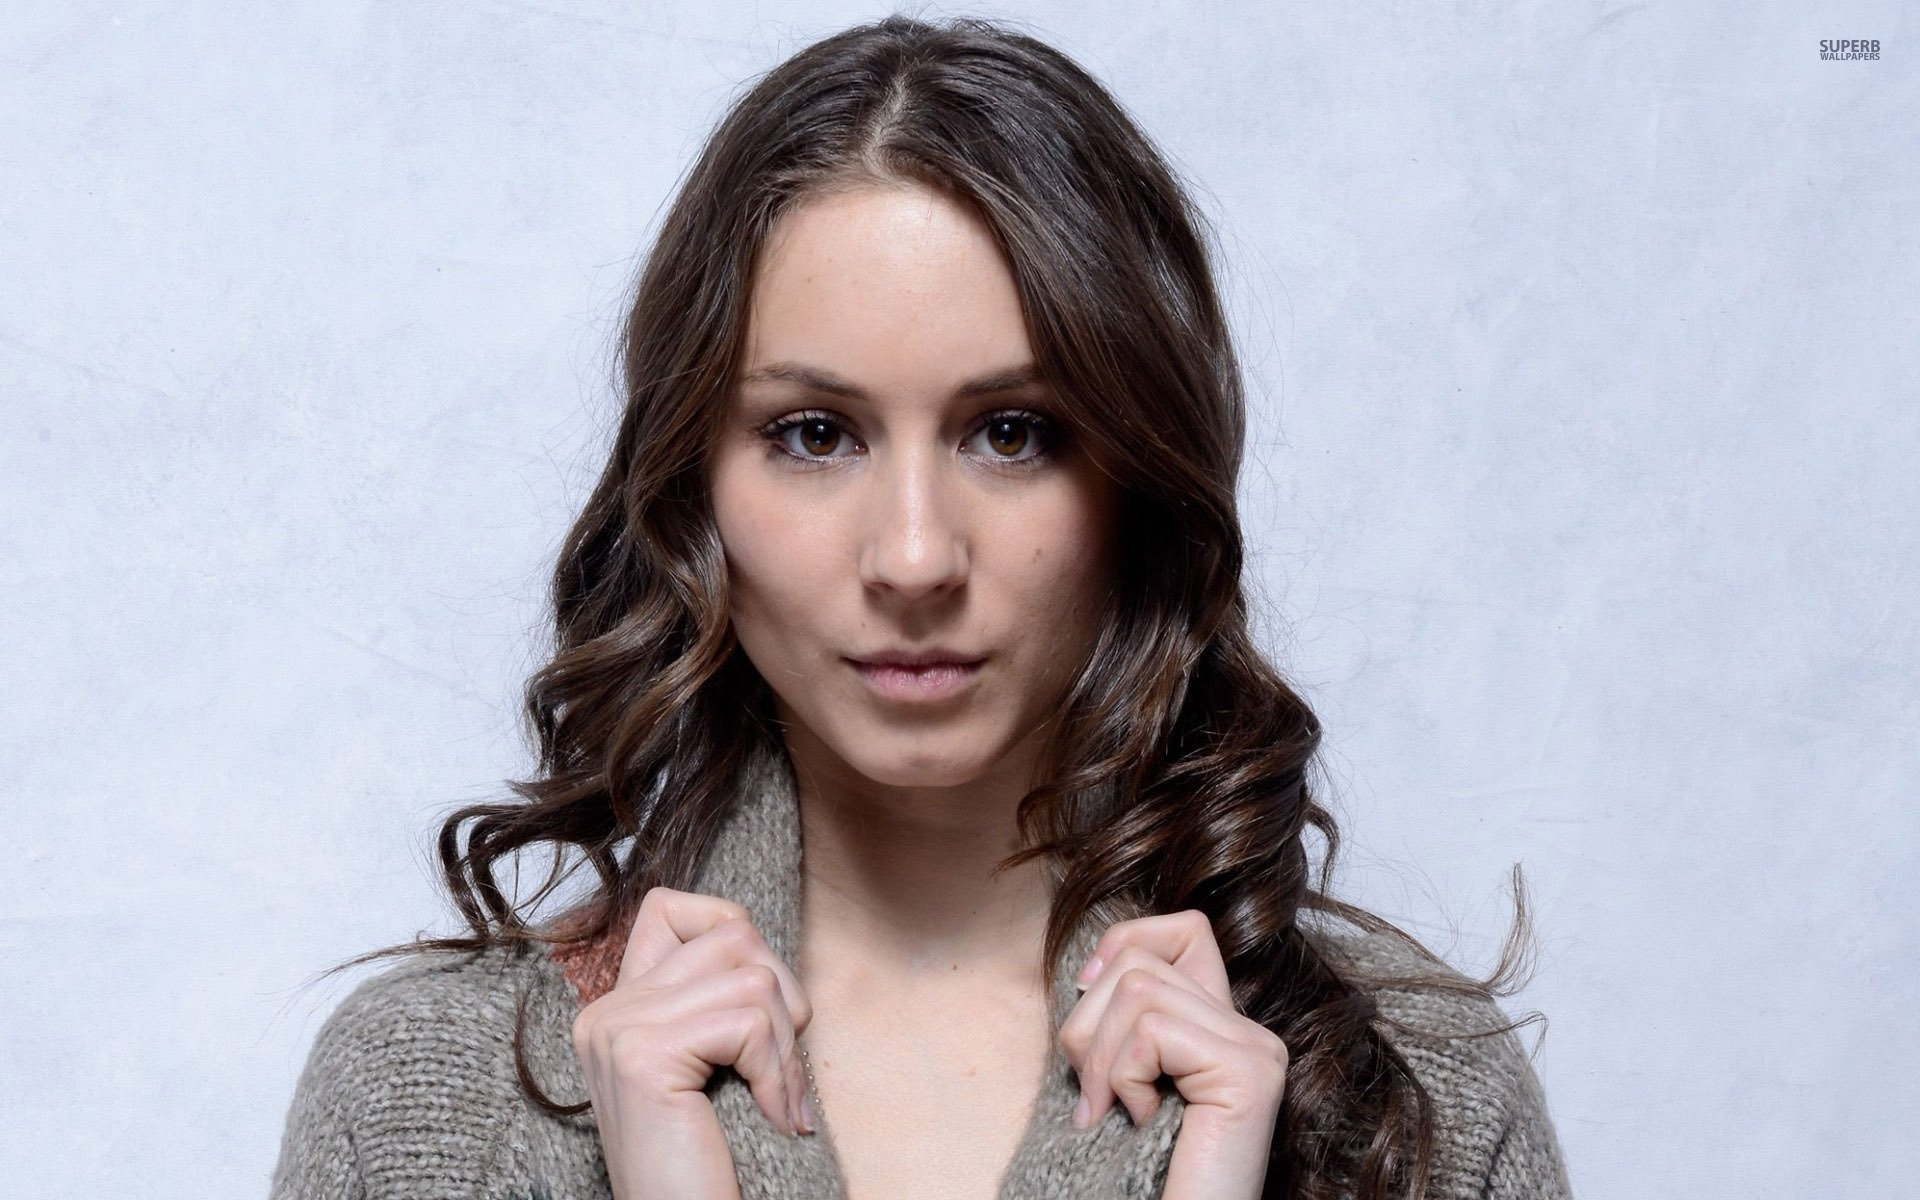 Pictures Of Troian Avery Bellisario